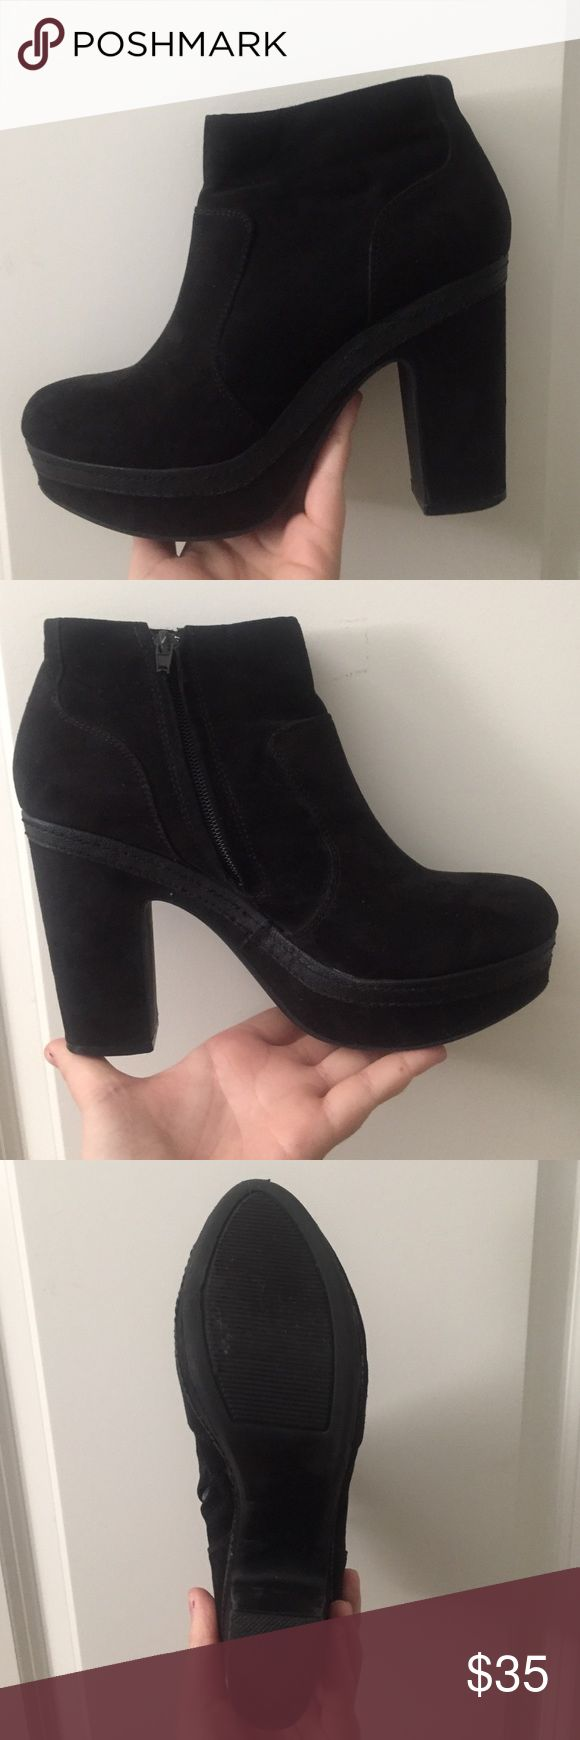 """Steve Madden black heeled booties! Worn only once inside! These have a 4"""" heel black and sleek and have a zipper on the inside of boot. Steve Madden Shoes Ankle Boots & Booties"""